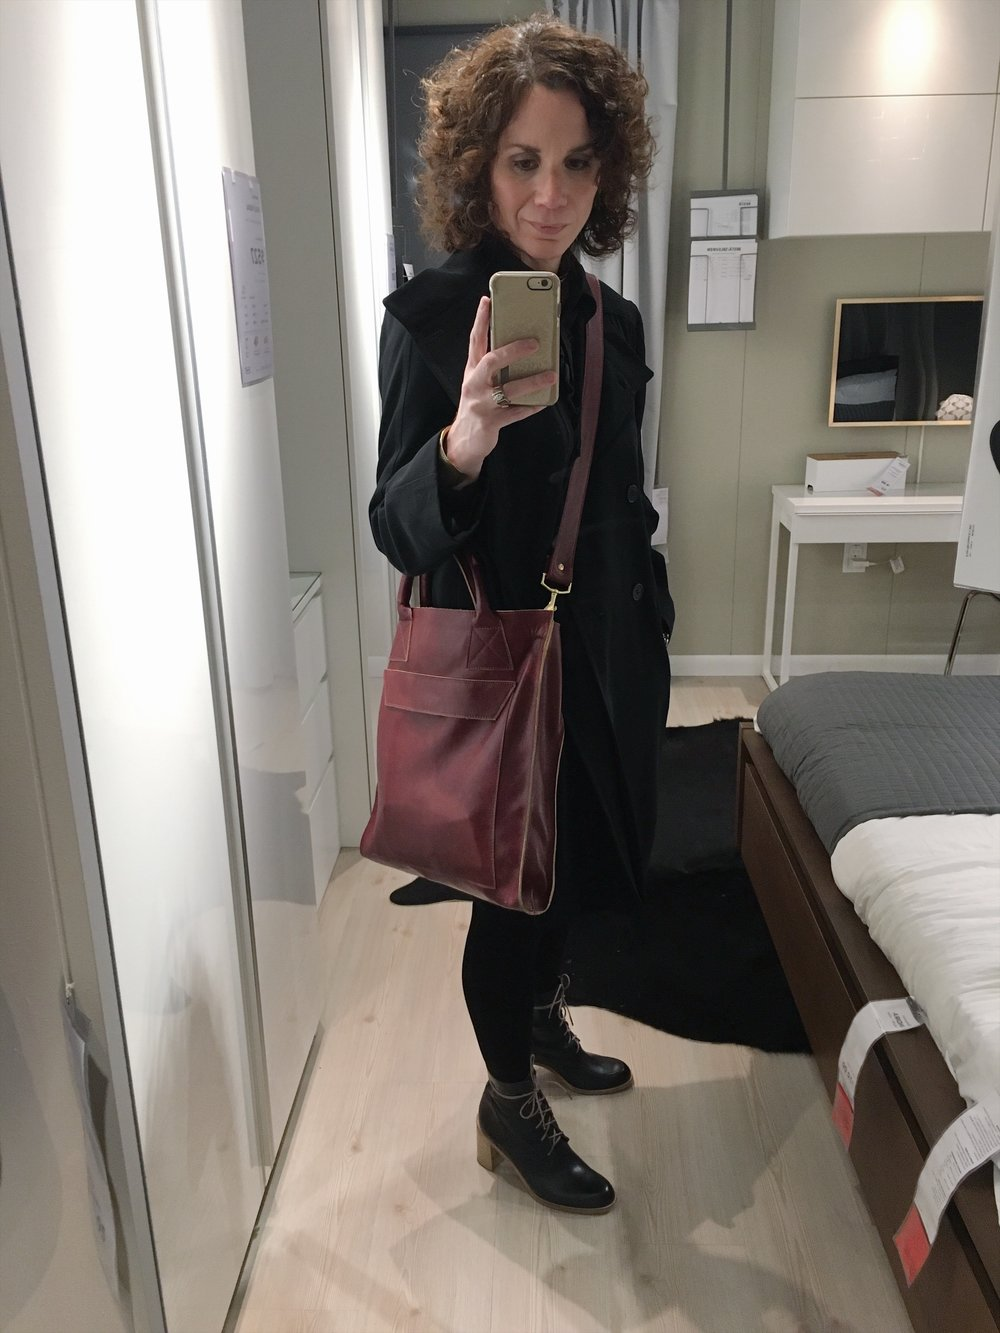 Ikea selfie! Jacket Vintage Richard Tyler The Private Label | Tote Ceri Hoover